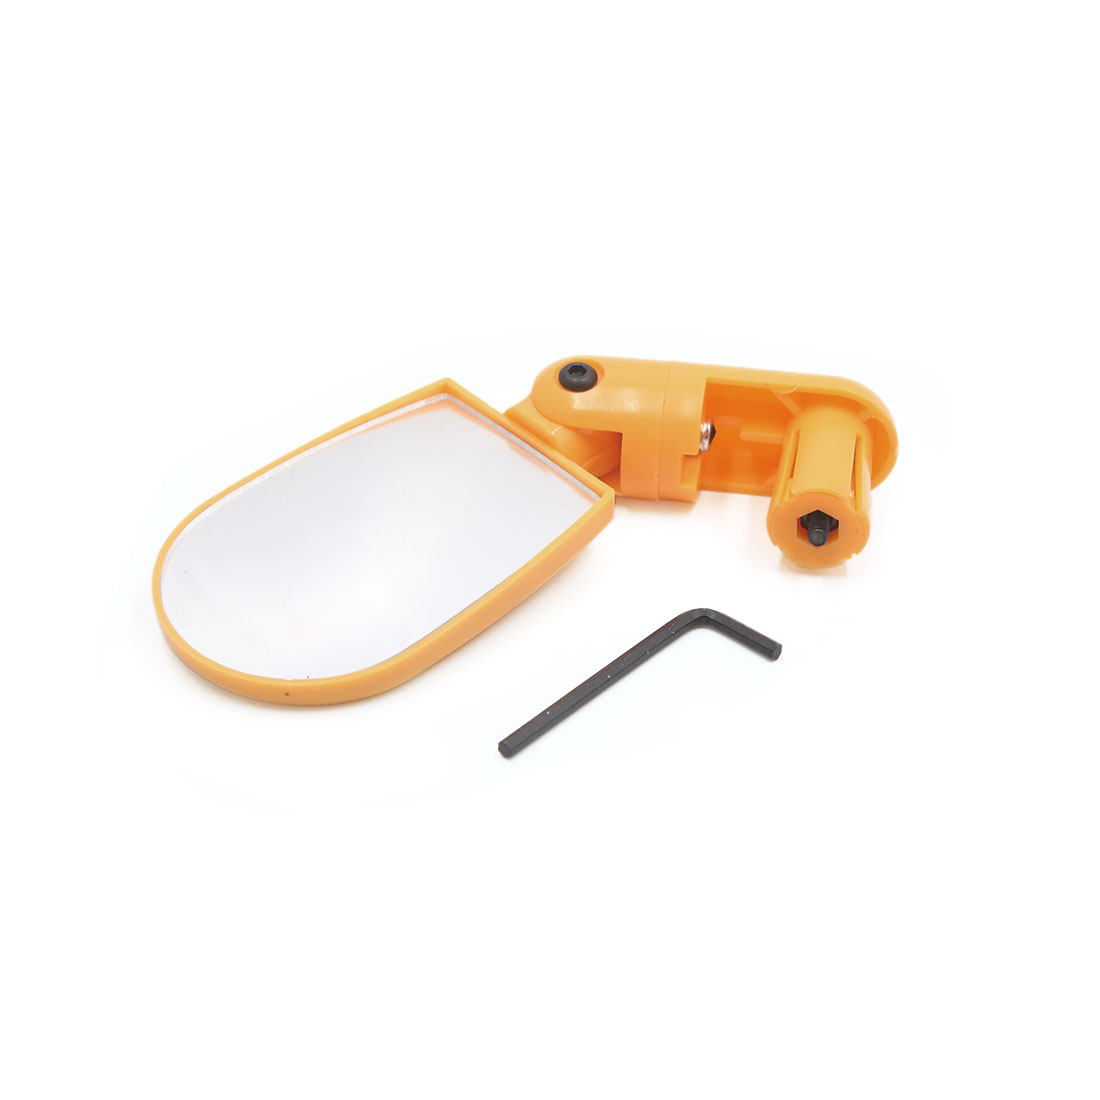 Adjustable Handlebar Back End Mount Rearview Mirror Yellow for Bicycle Bike